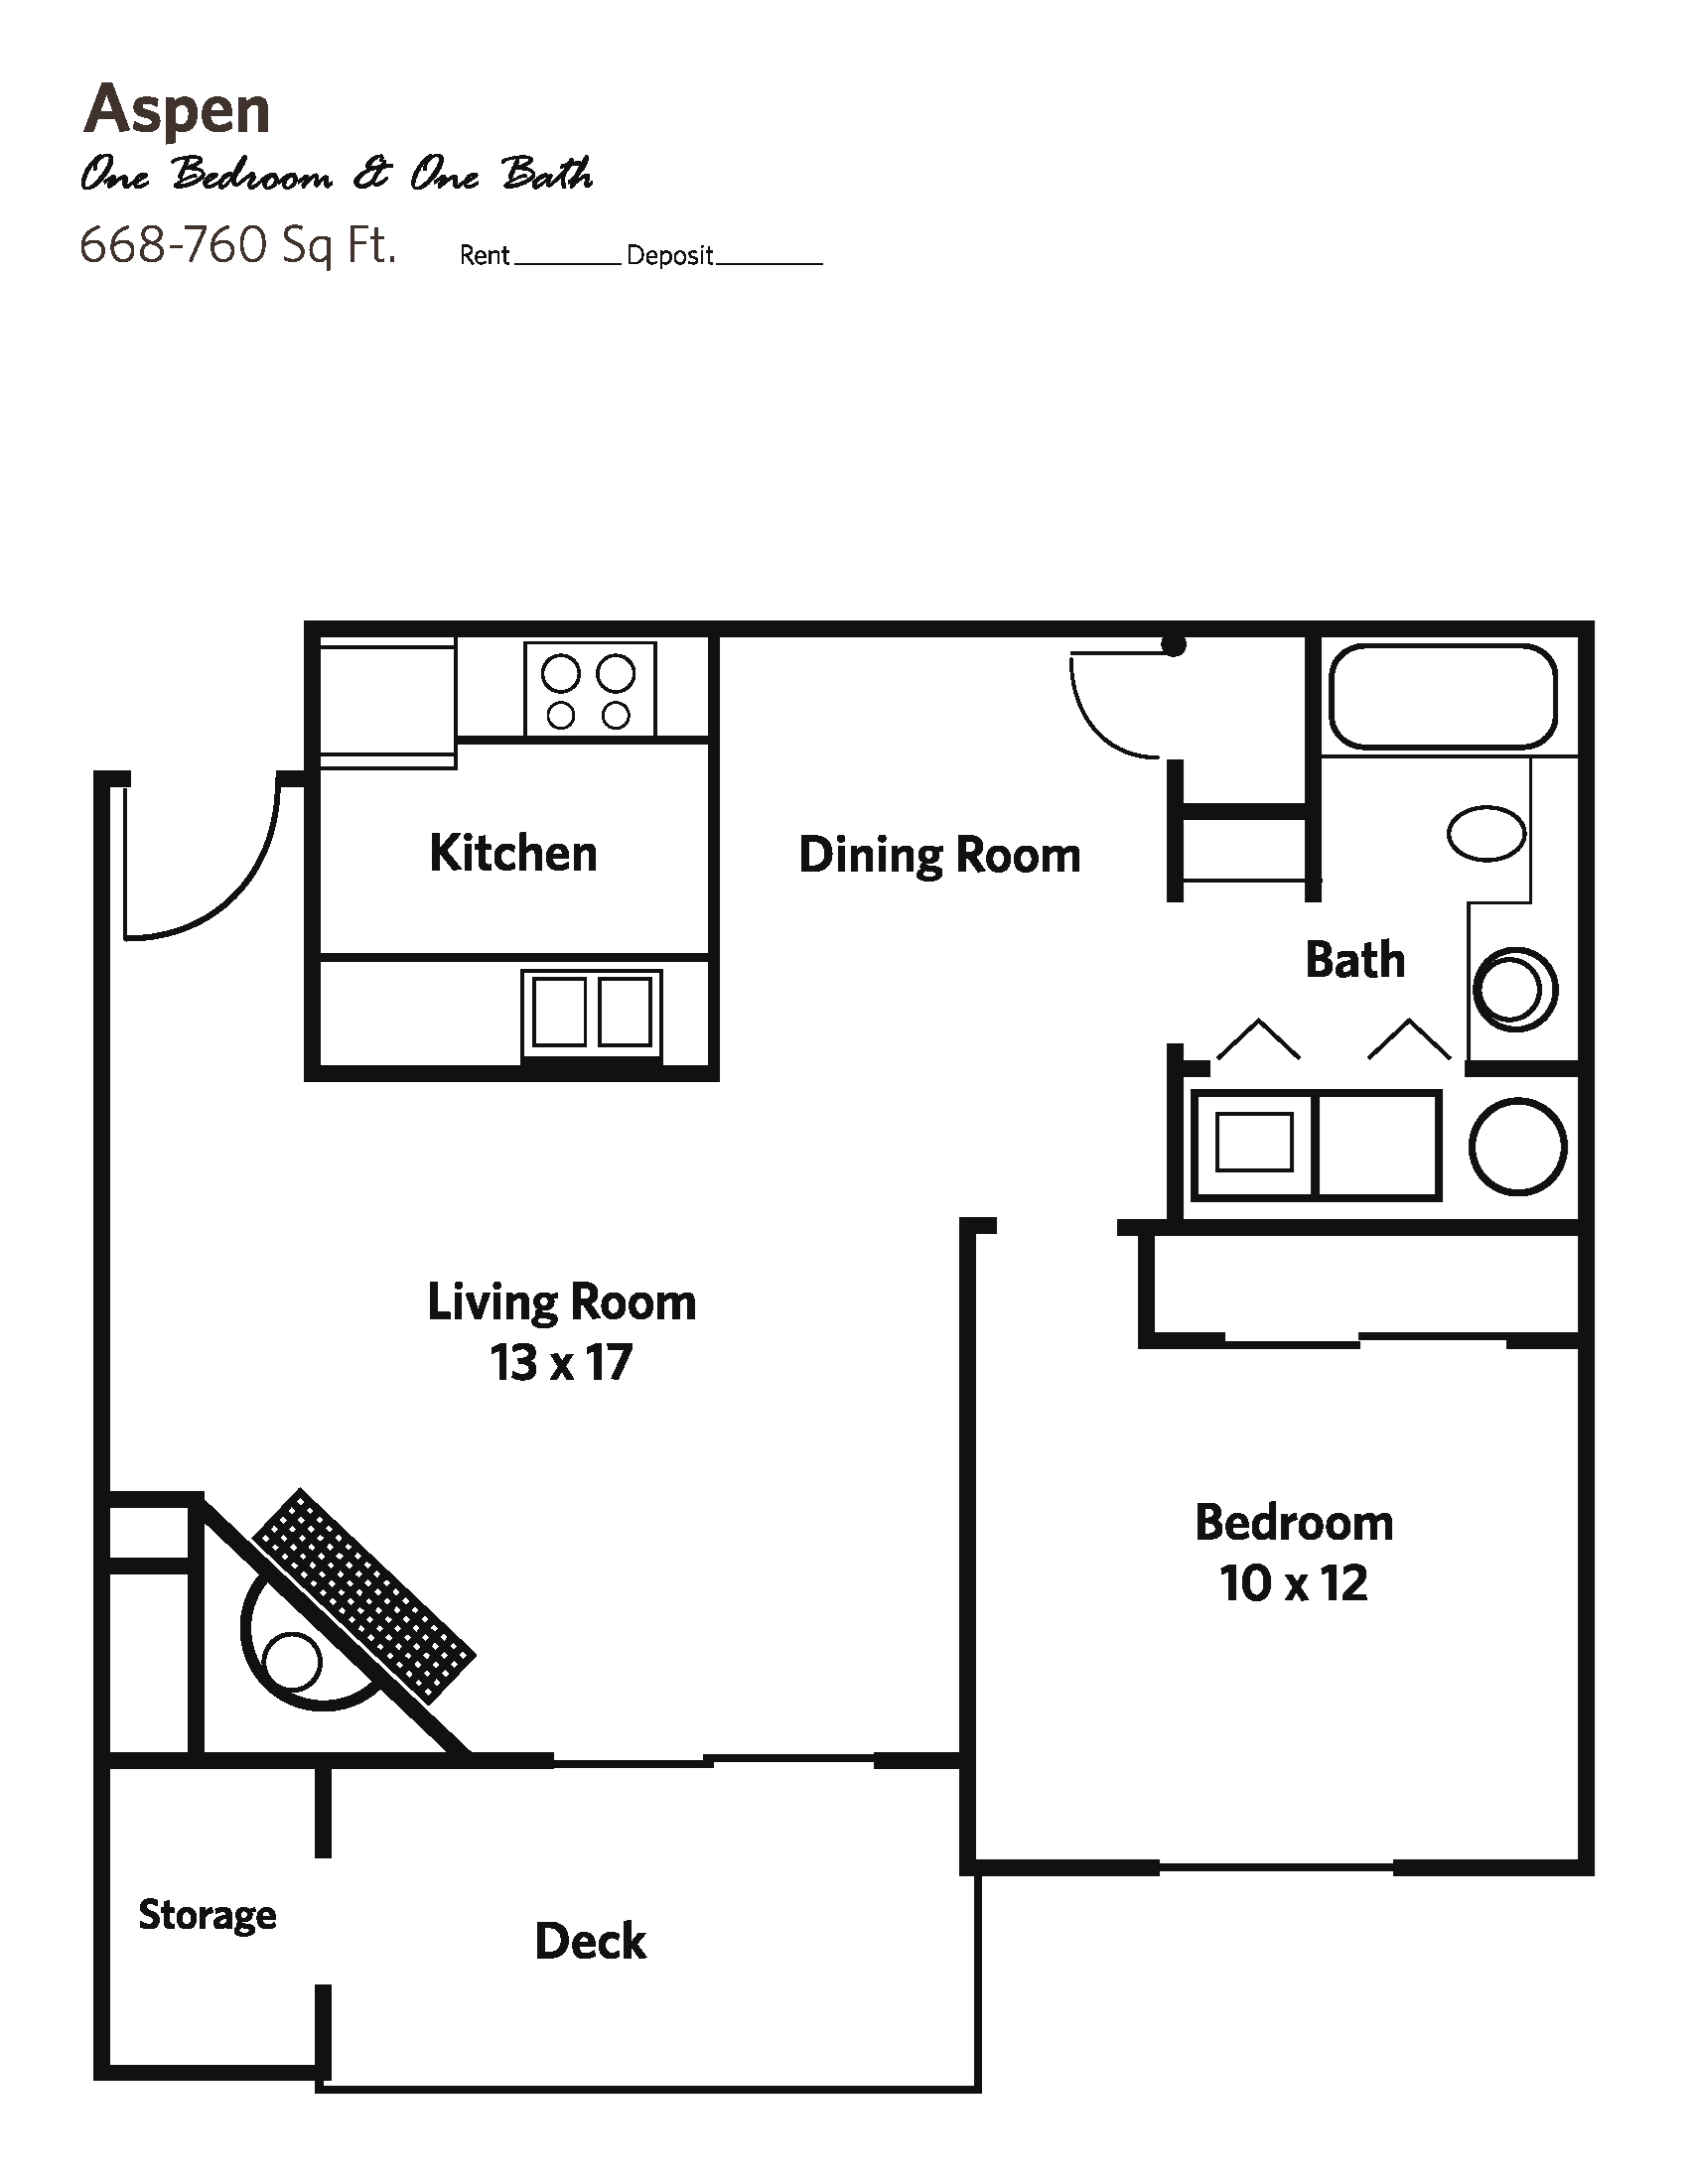 ASPEN Large (1 bed + 1 bath) - Apartments Floor Plan 3